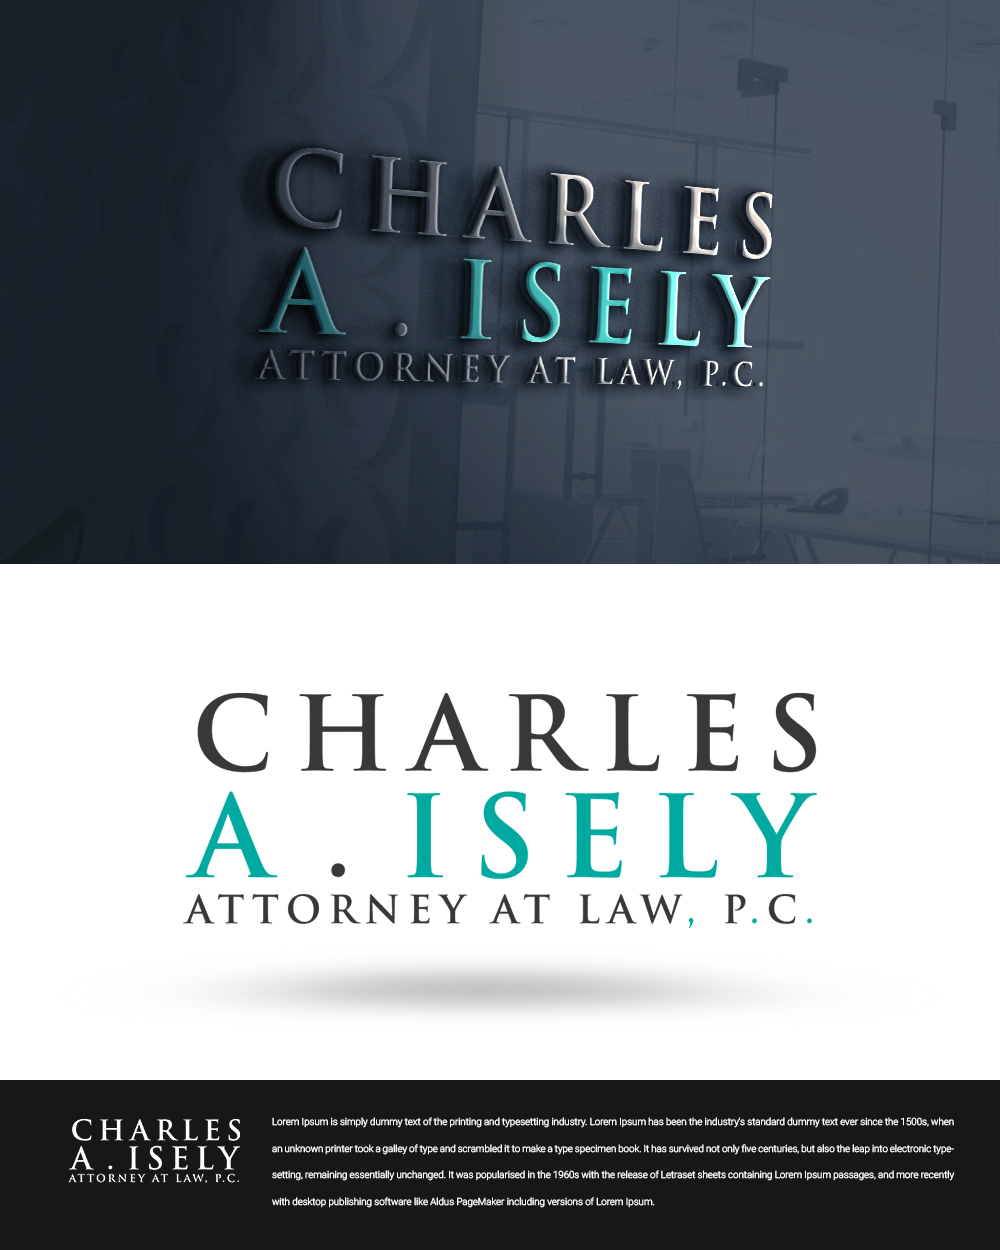 Logo Design for Charles A  Isely, Attorney at Law, P C  by